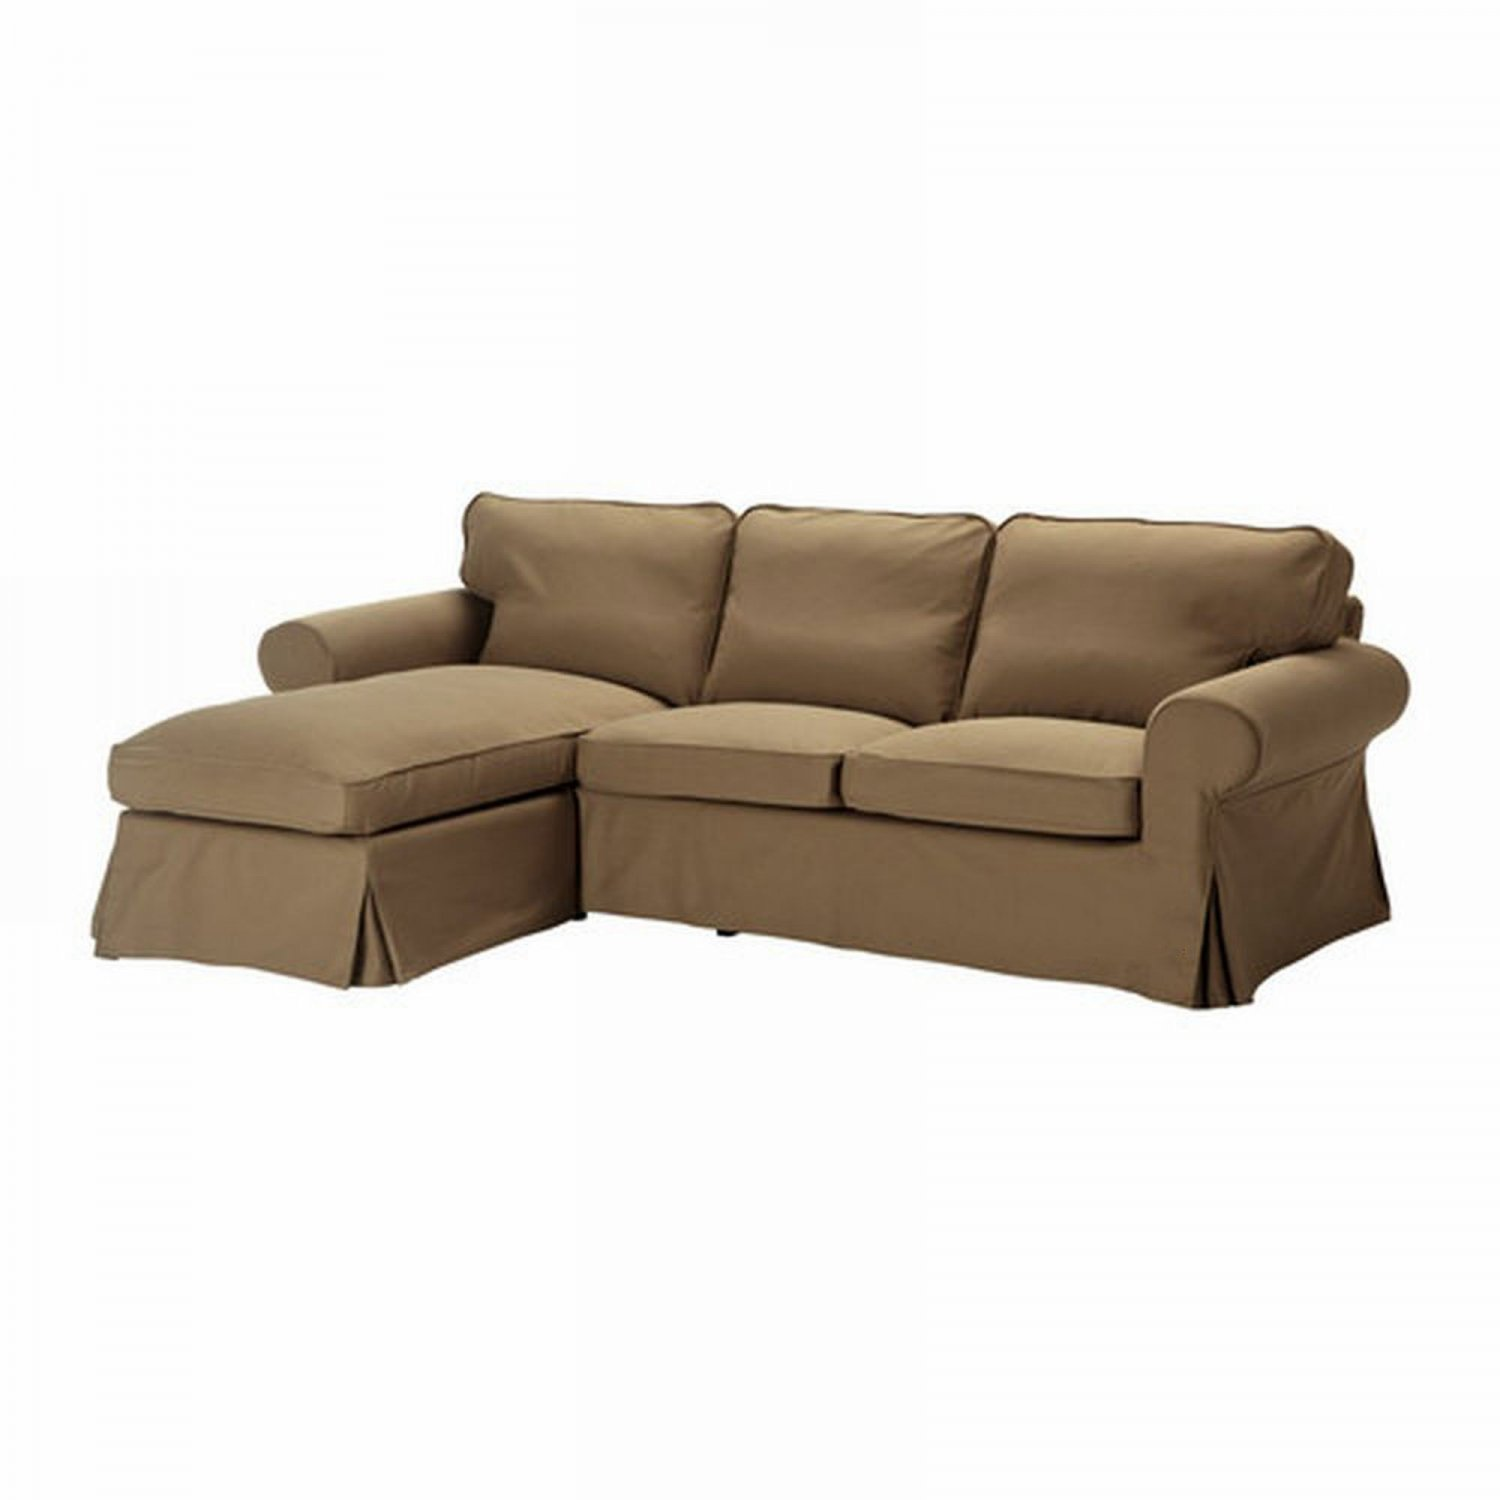 ikea karlanda sofa covers uk craftsman plans ektorp loveseat with chaise cover slipcover